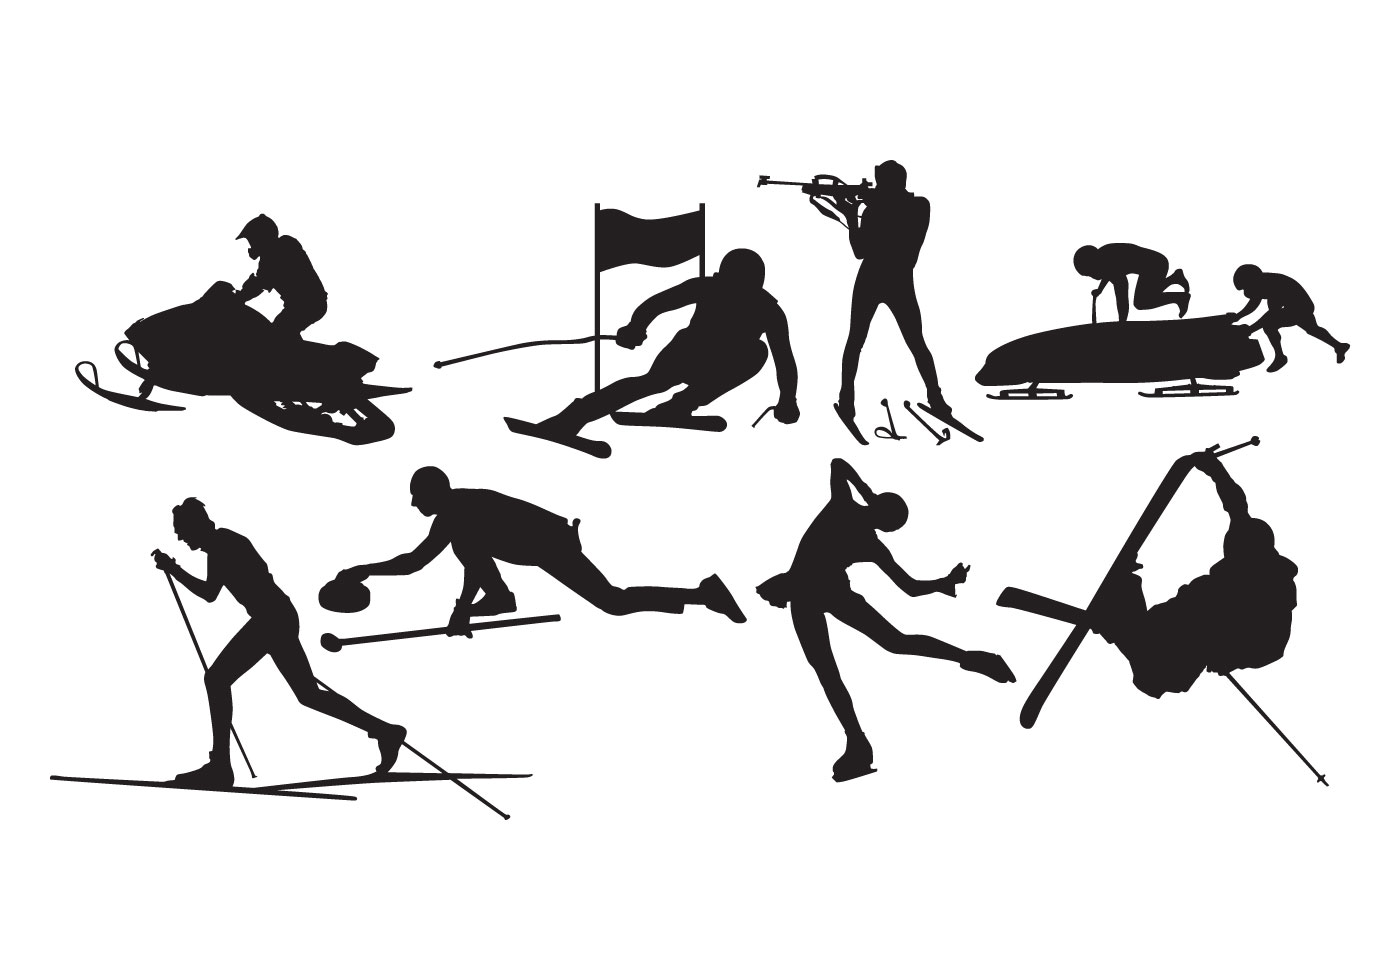 Dynamic Sports Figures Silhouette: Winter Sport Silhouette Vector